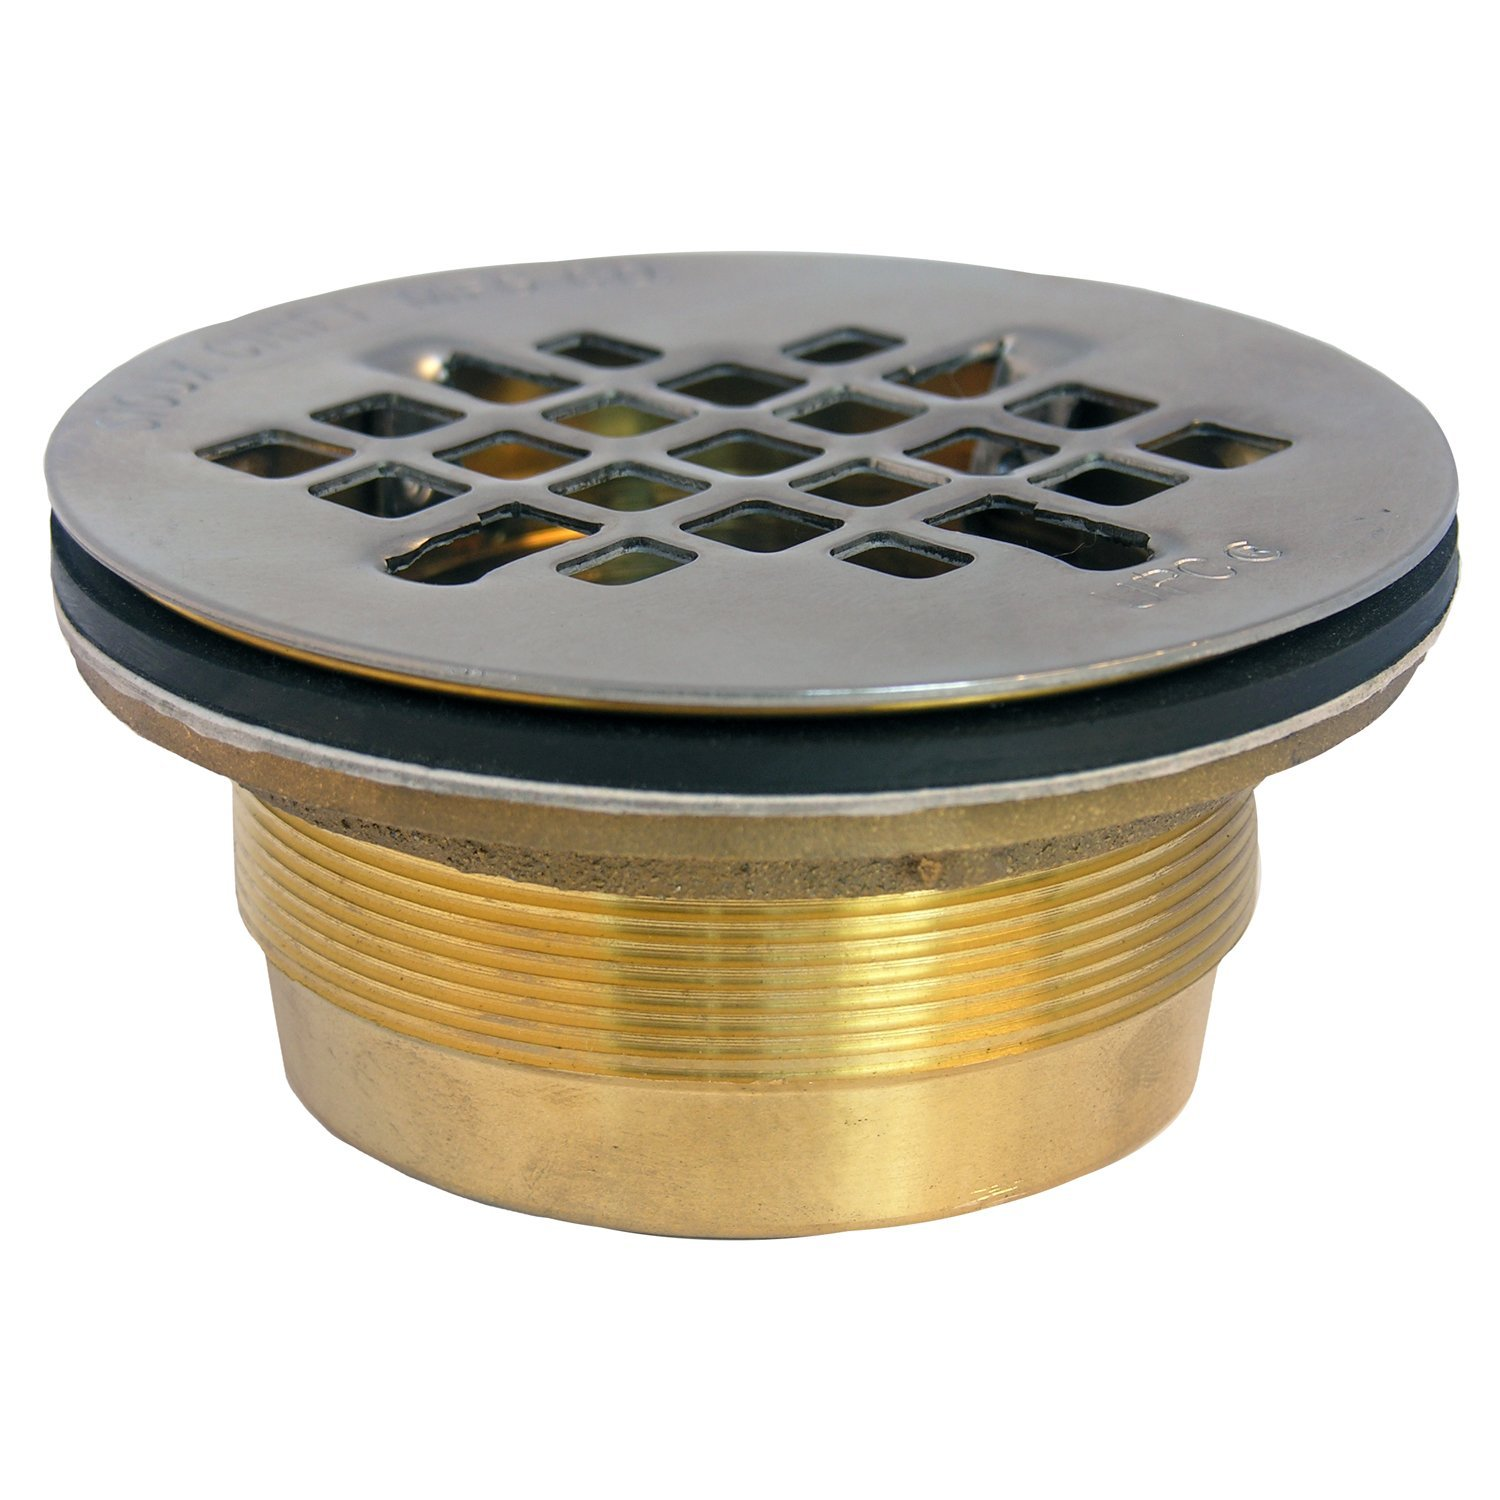 LASCO 03-1223 Drain for Fiberglass Shower with 2-Inch Compression Gasket Connection and Brass Body with Snap In Stainless Steel Strainer